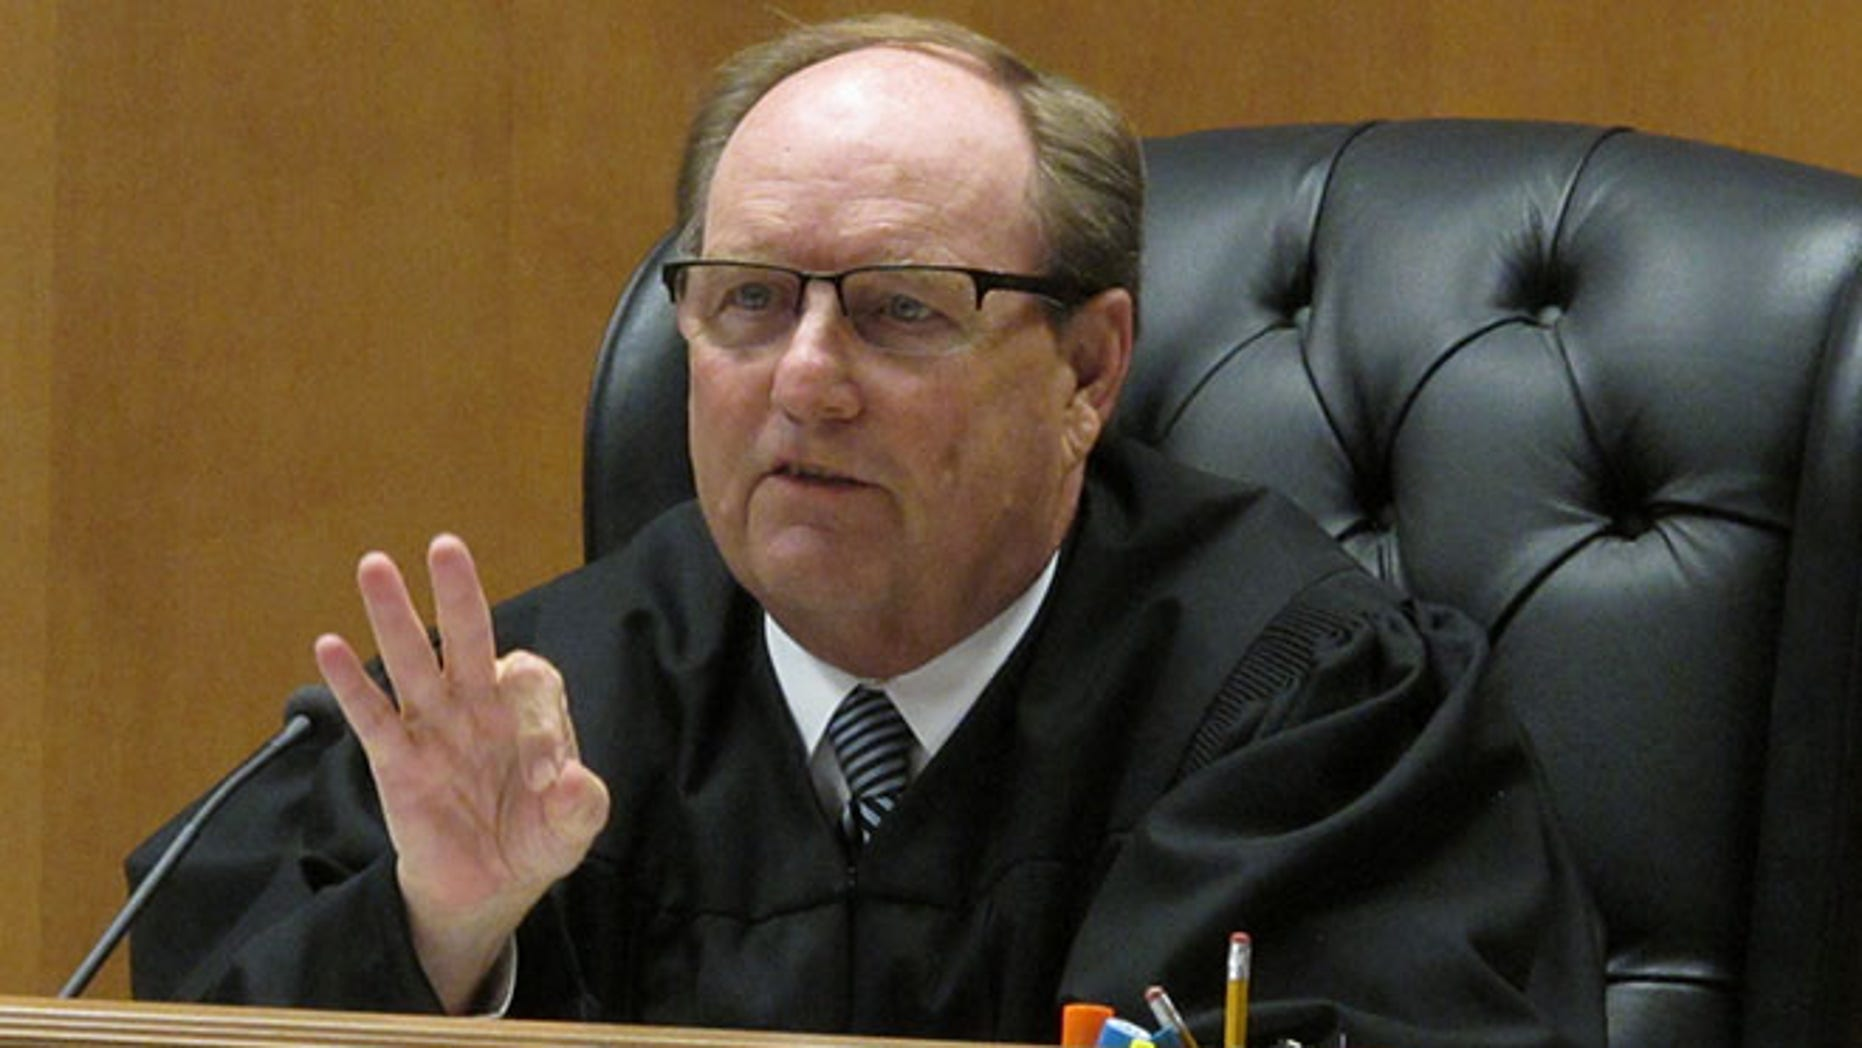 Shawnee County, Kan., District Judge Larry on Friday, July 29, 2016, in Topeka, Kan.